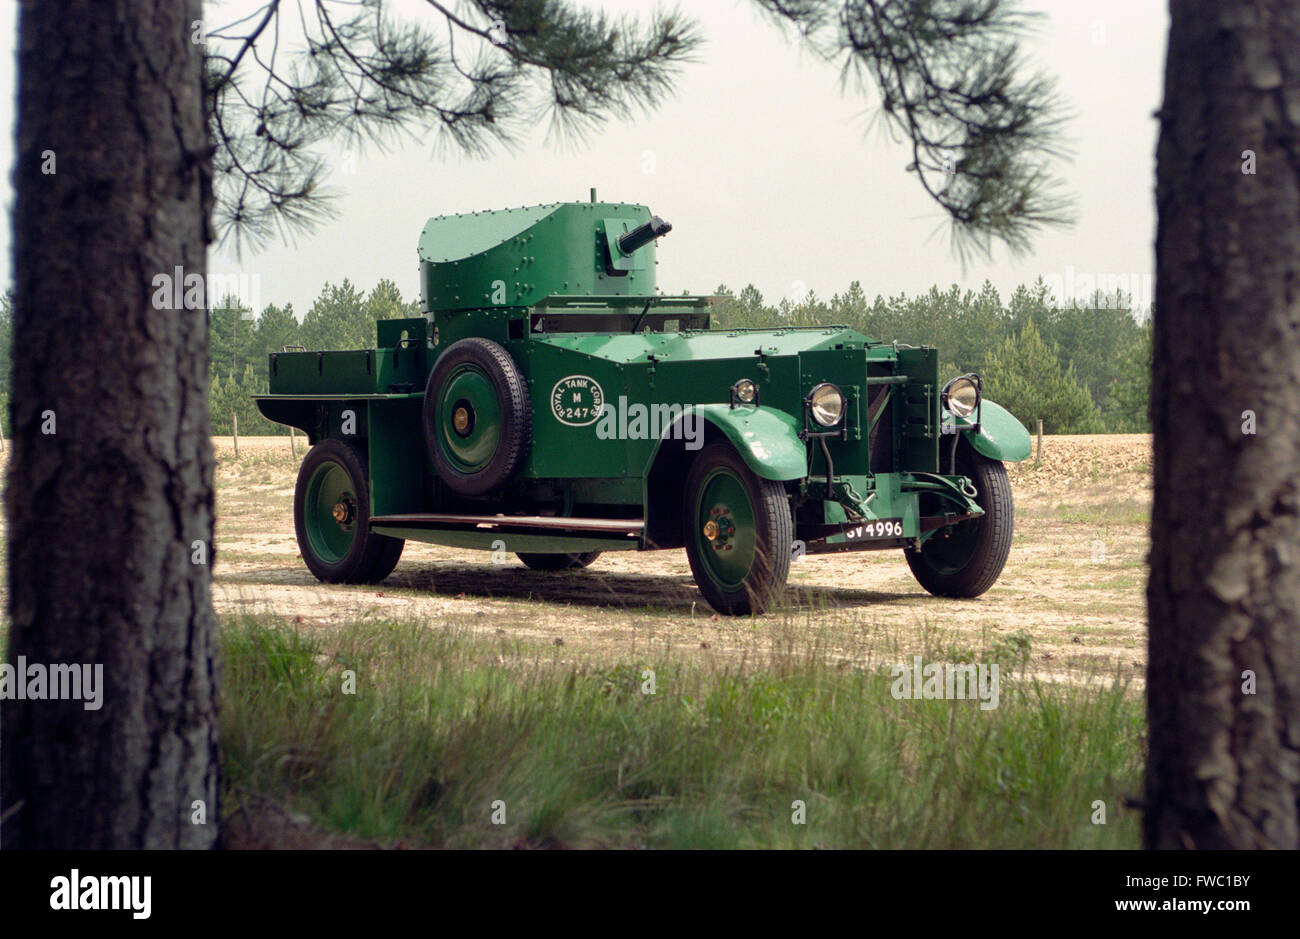 A rolls royce tank or armoured car from the period of the first ...